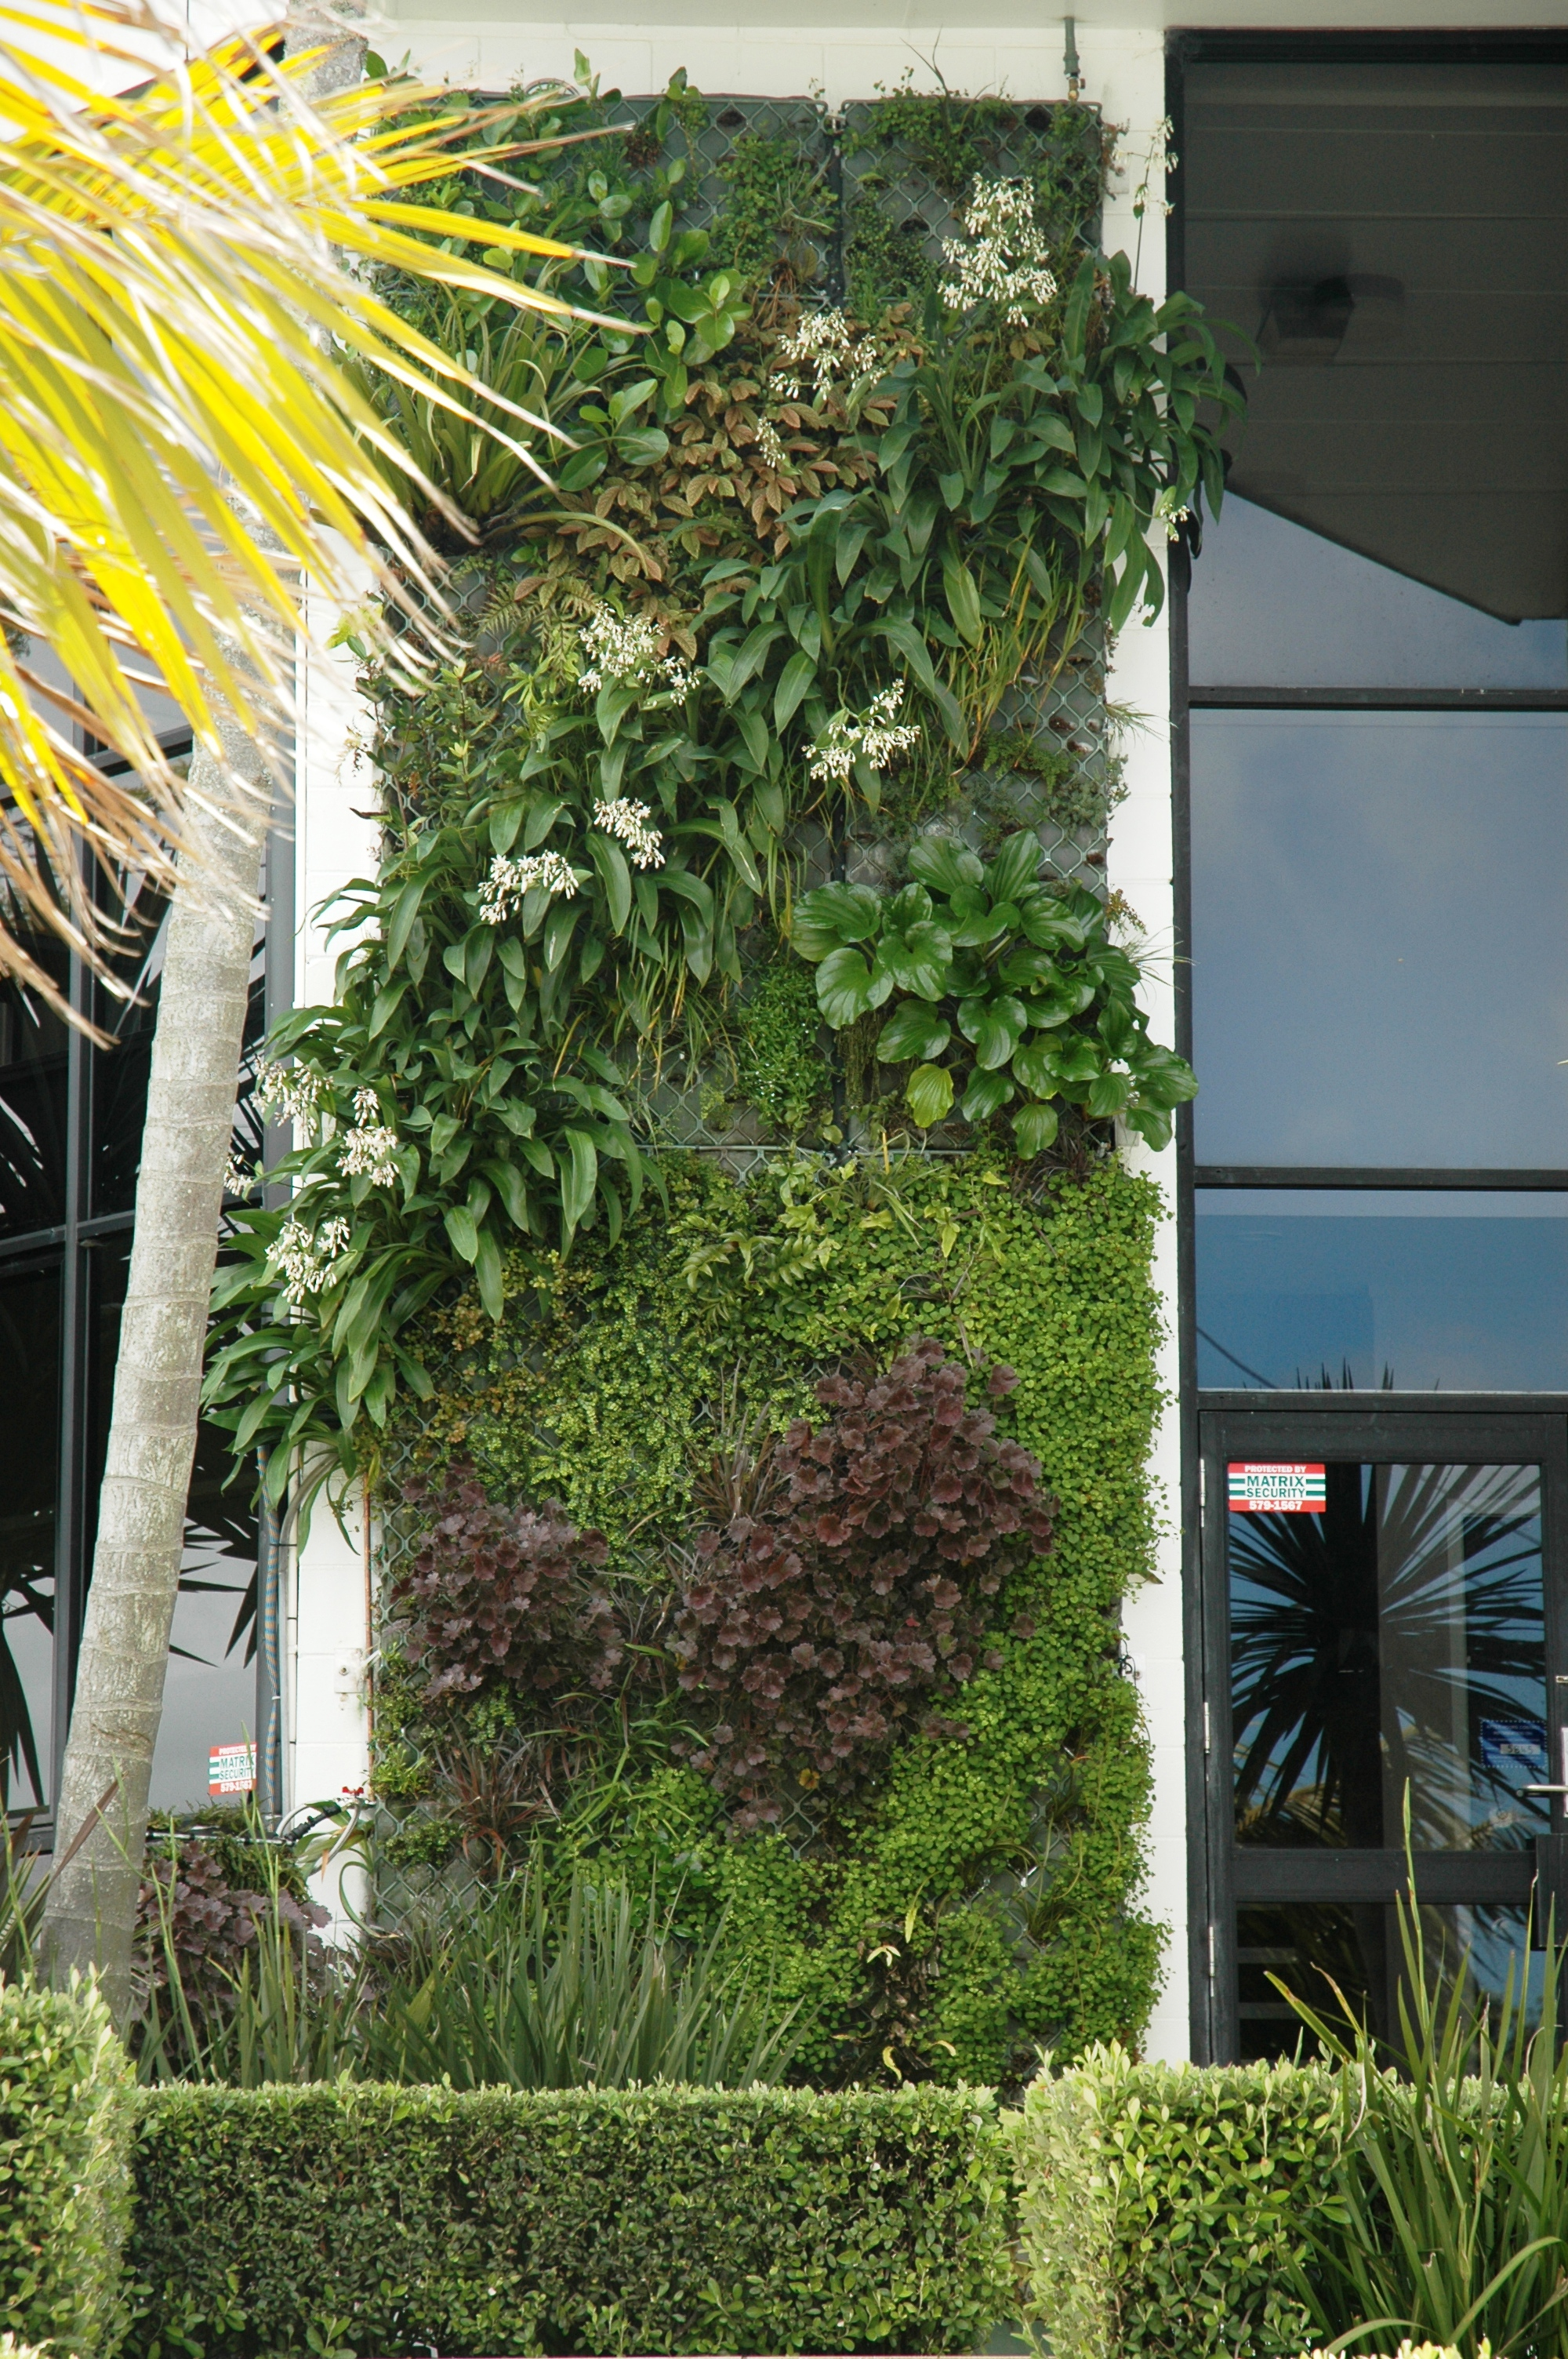 Natural Habitats | Green Wall | Environment | auckland ...